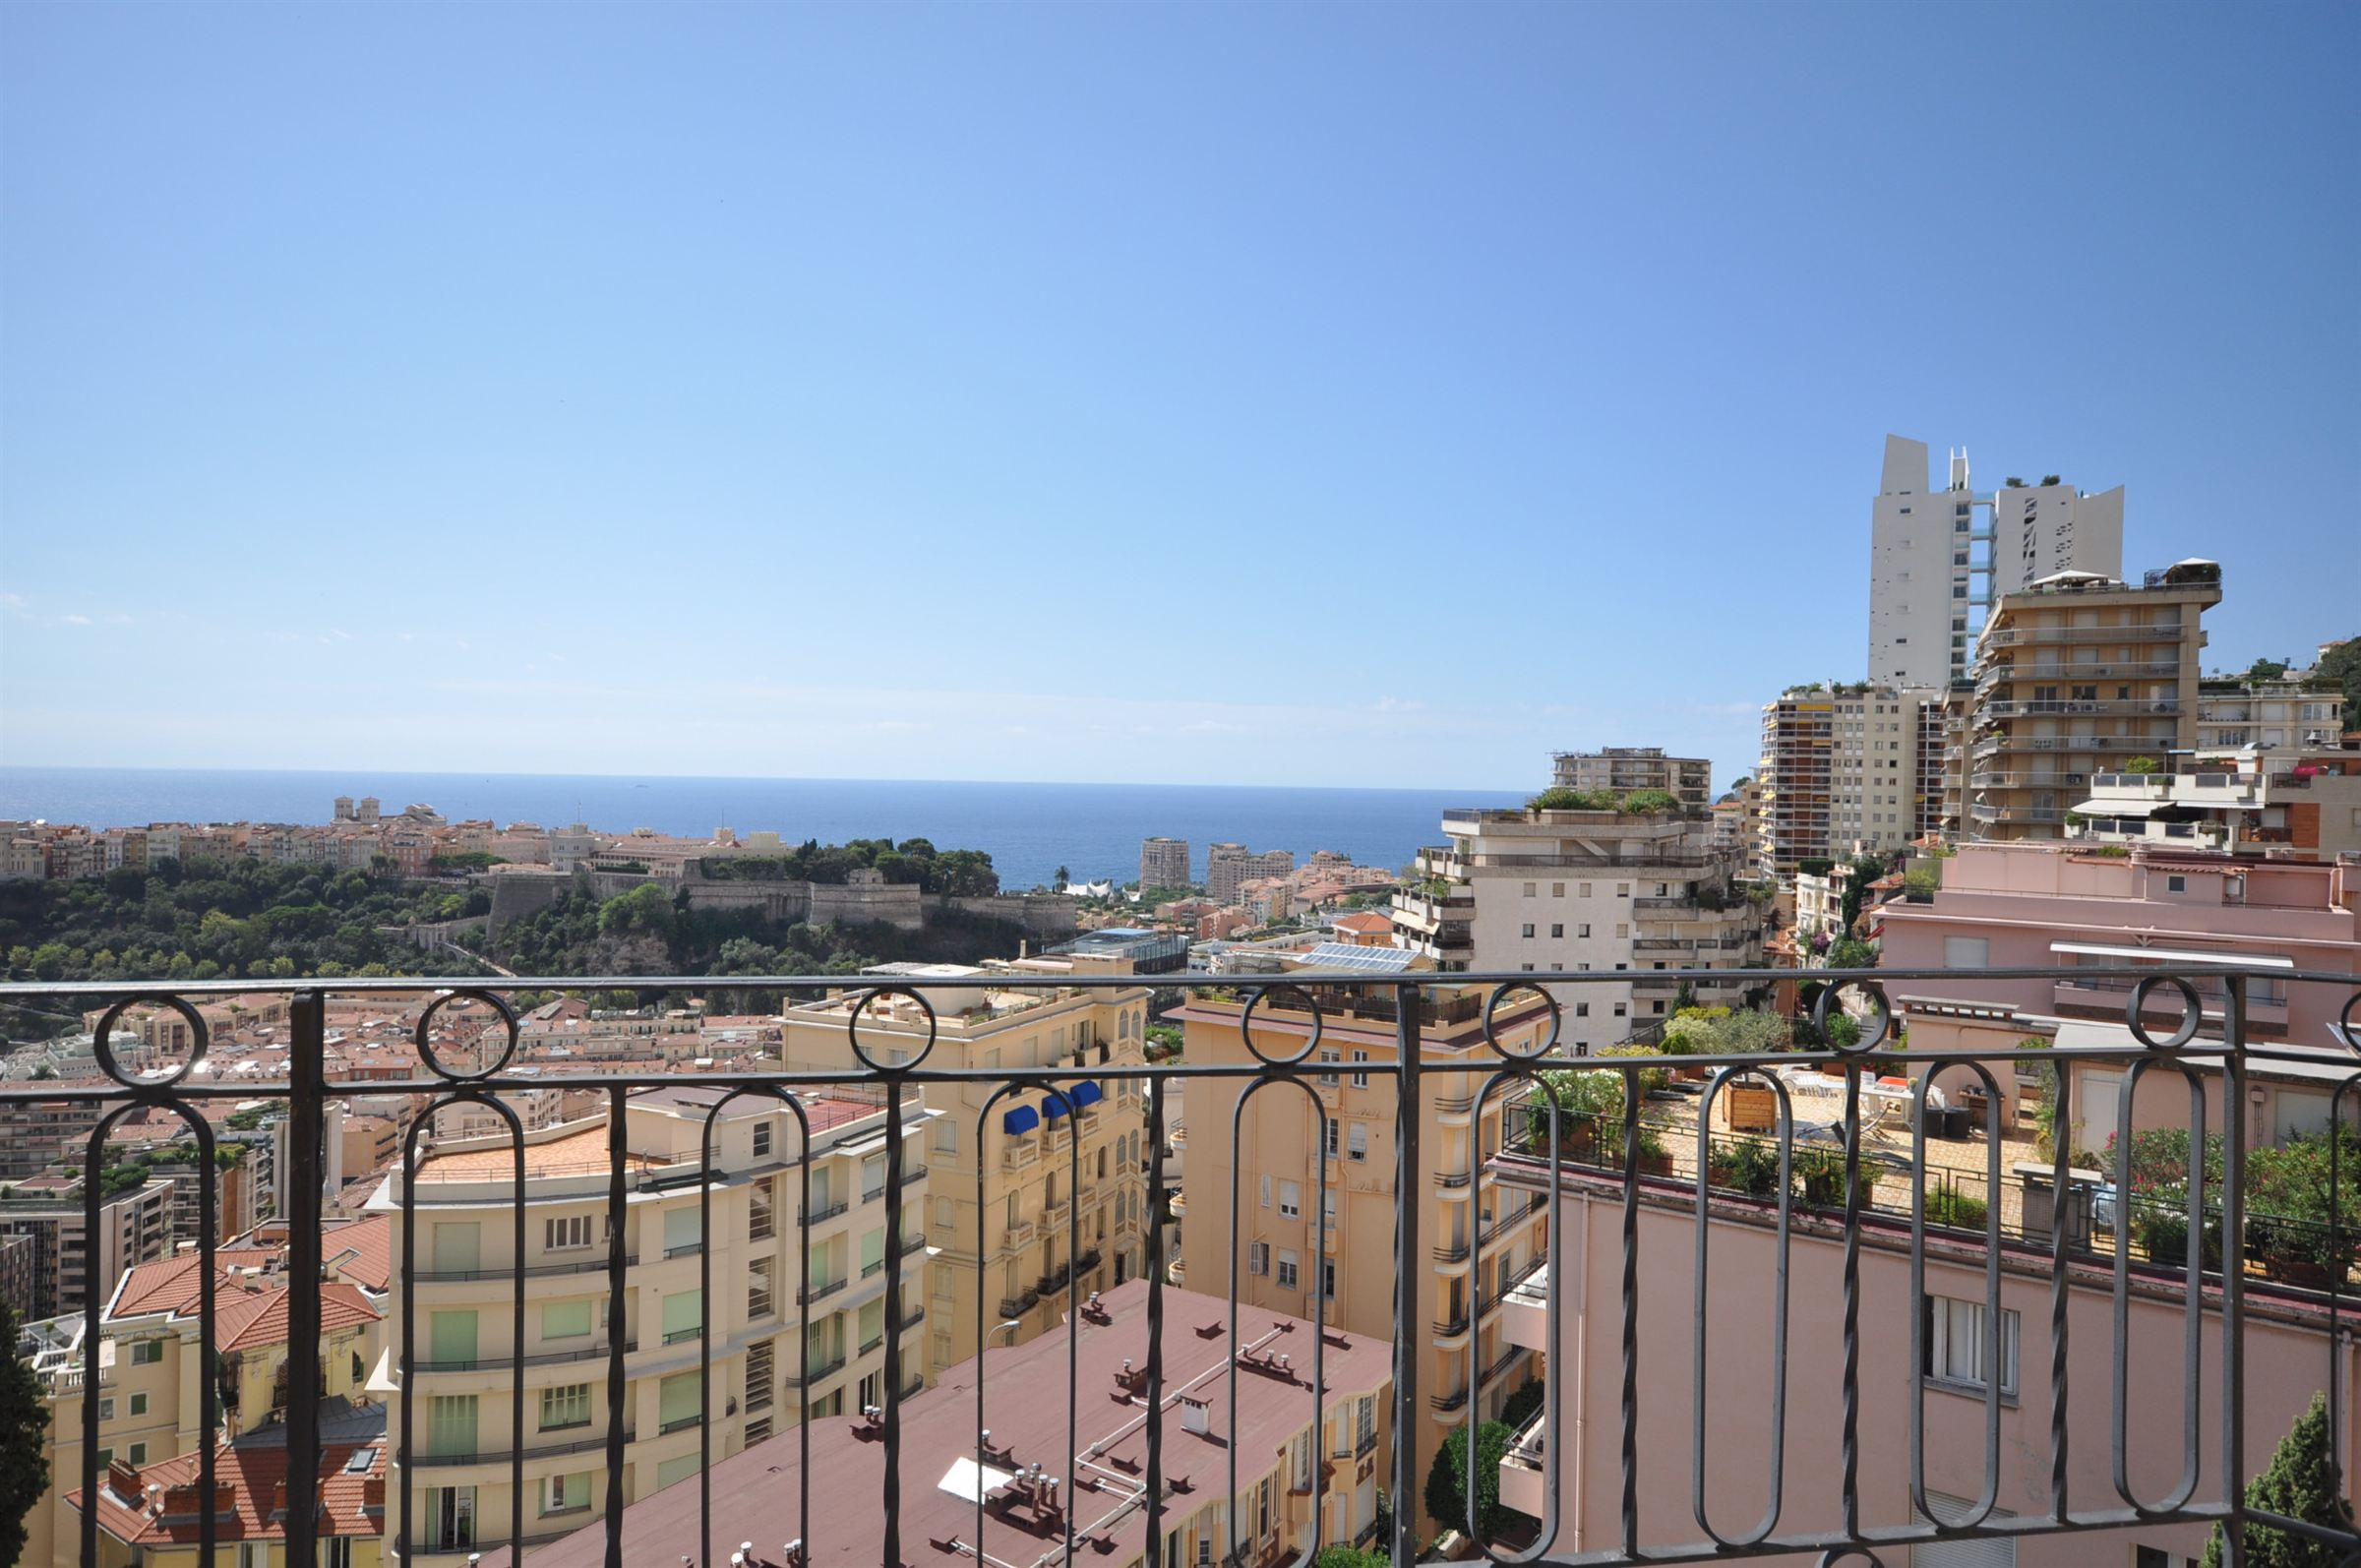 Duplex for Sale at Superb renovated Duplex, panoramic views Other Monaco, Other Areas In Monaco, 98000 Monaco